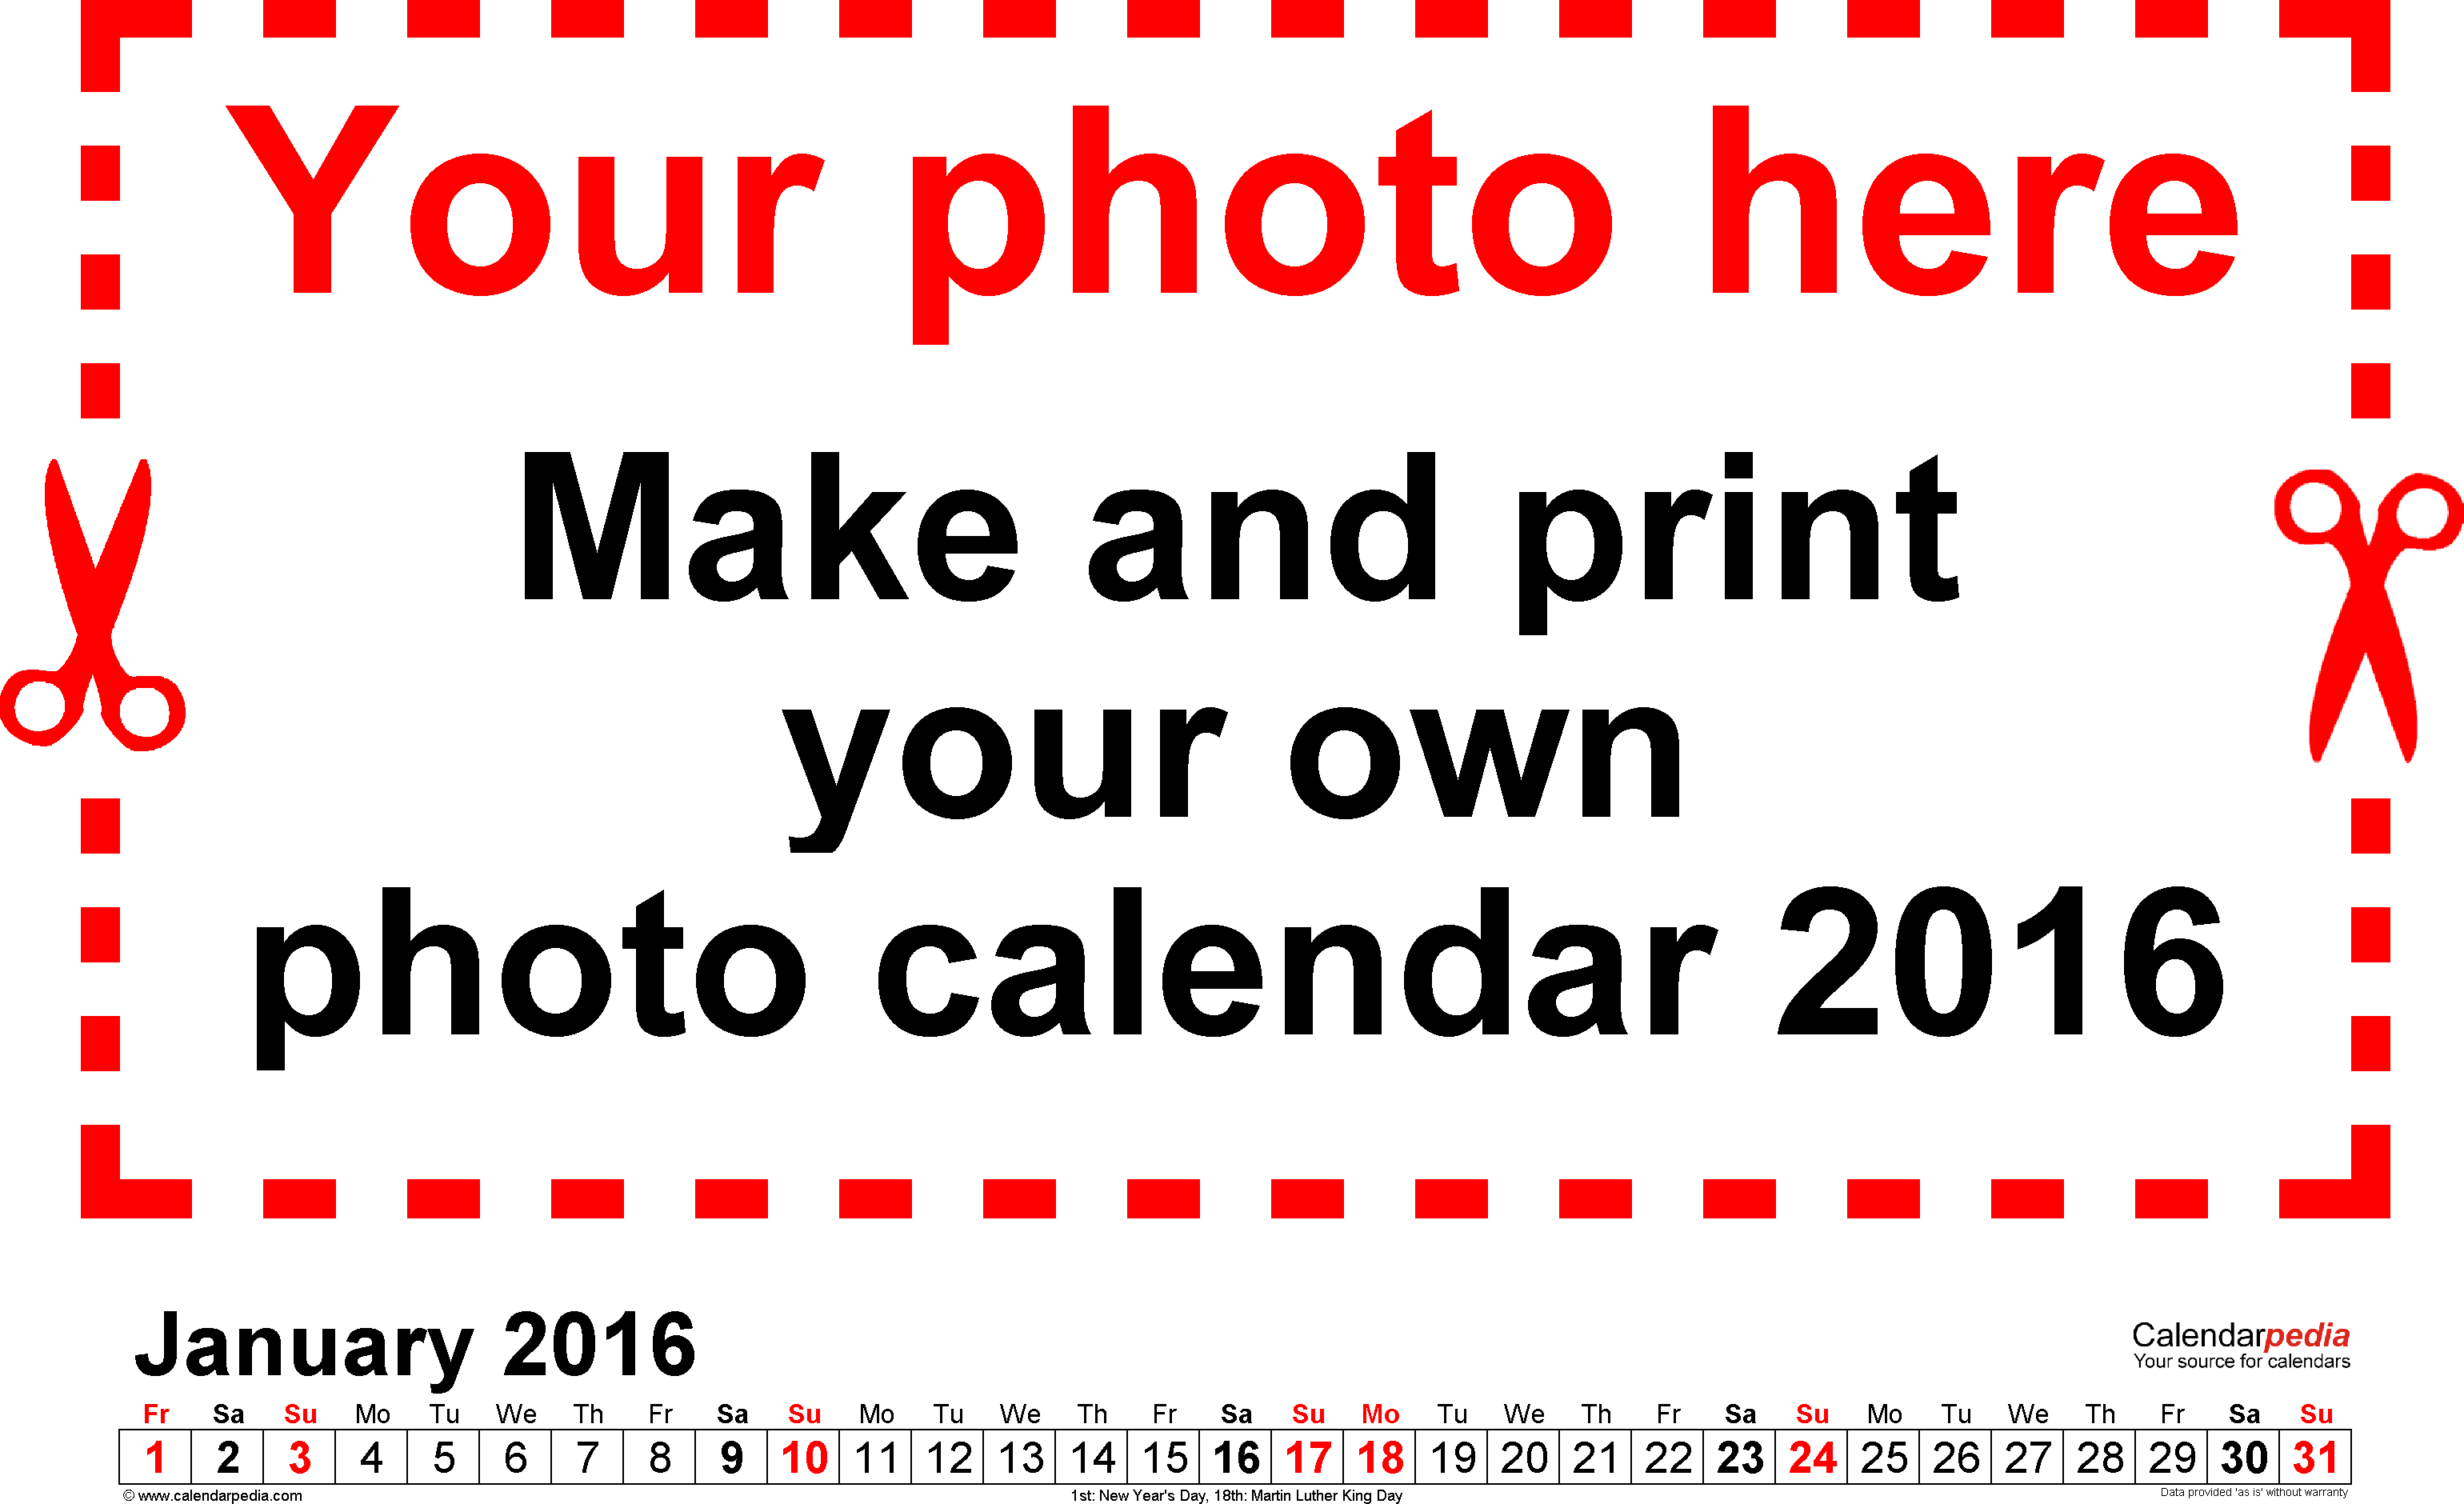 Template 5: Photo calendar 2016 for PDF, 12 pages, landscape format